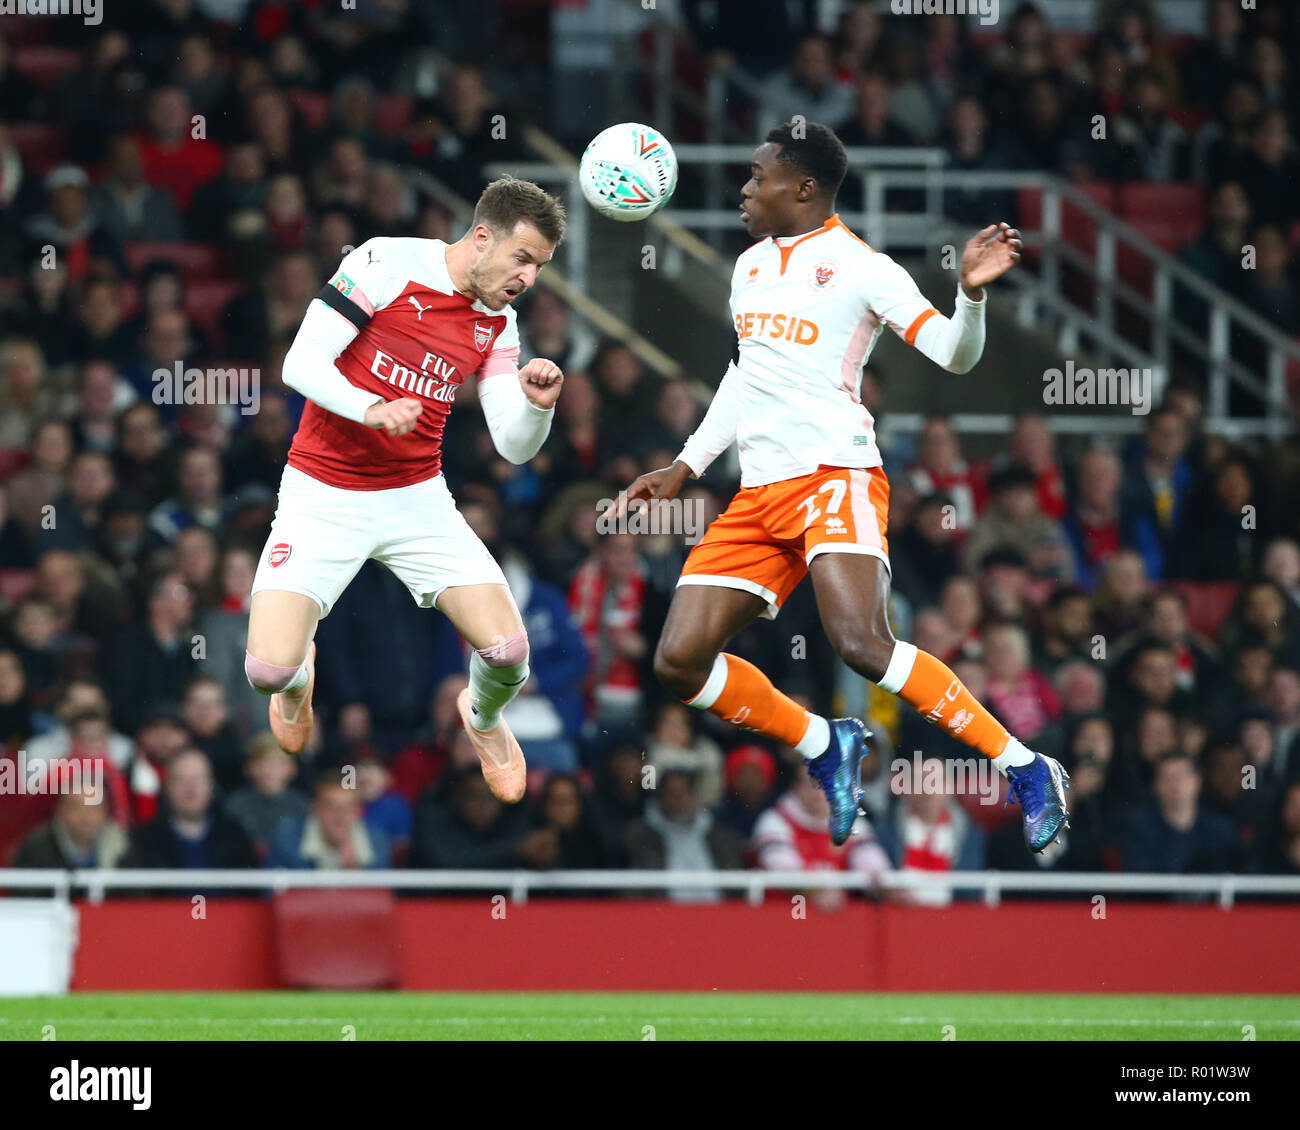 London, UK, 31 October, 2018 Aaron Ramsey of Arsenal during EFL Cup Fourth Round  between Arsenal and Blackpool at Emirates stadium , London, England on 31 Oct 2018.  Credit Action Foto Sport Credit: Action Foto Sport/Alamy Live News - Stock Image